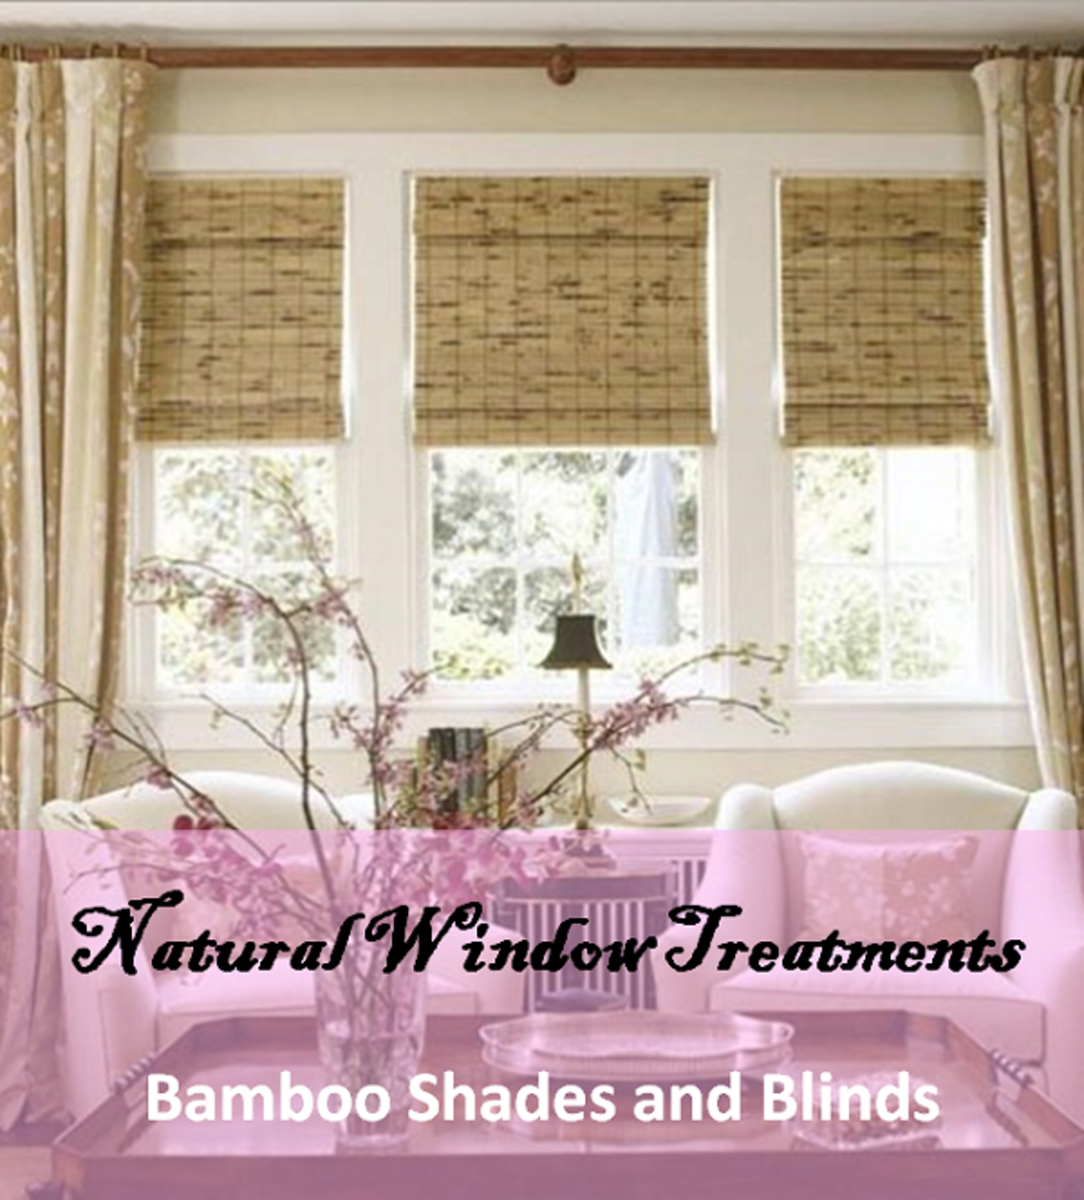 Natural Window Treatments: Bamboo Shades and Blinds